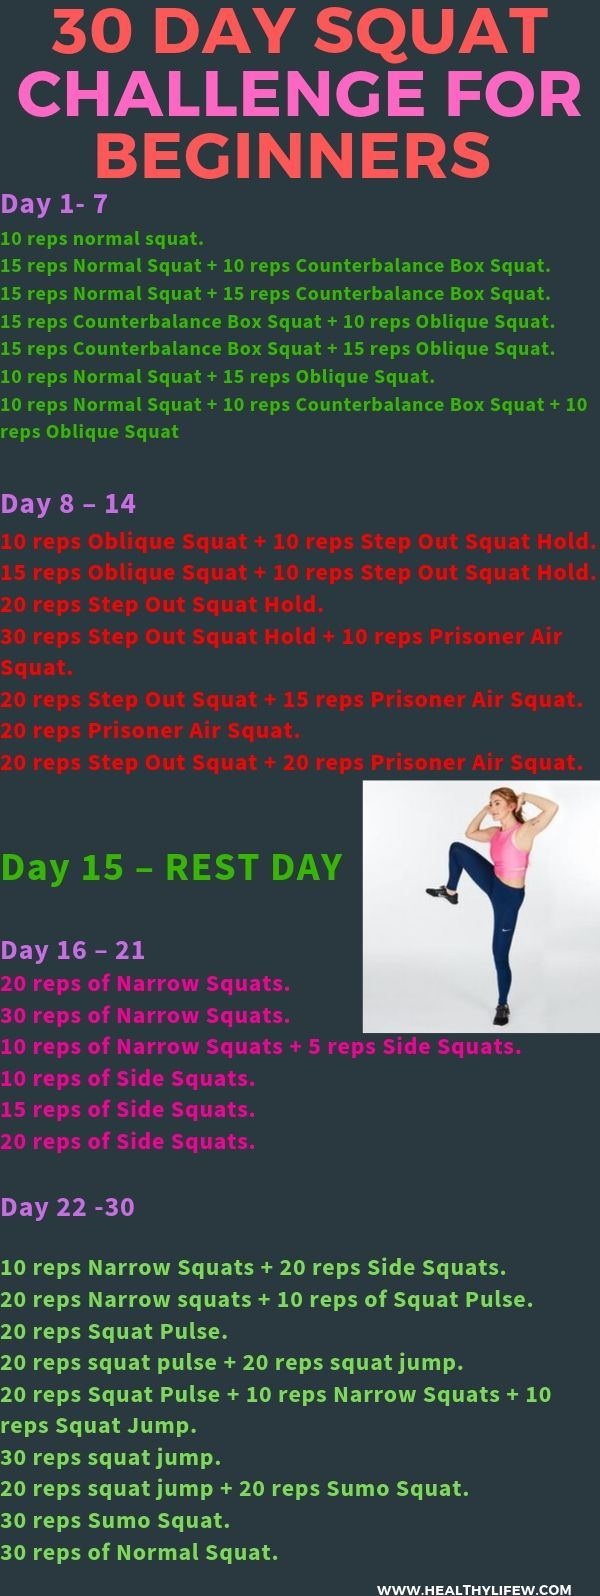 30 Day Squat Challenge For Beginners At Home In 2020 Pertaining To Squat Challenge For Beginners Printable